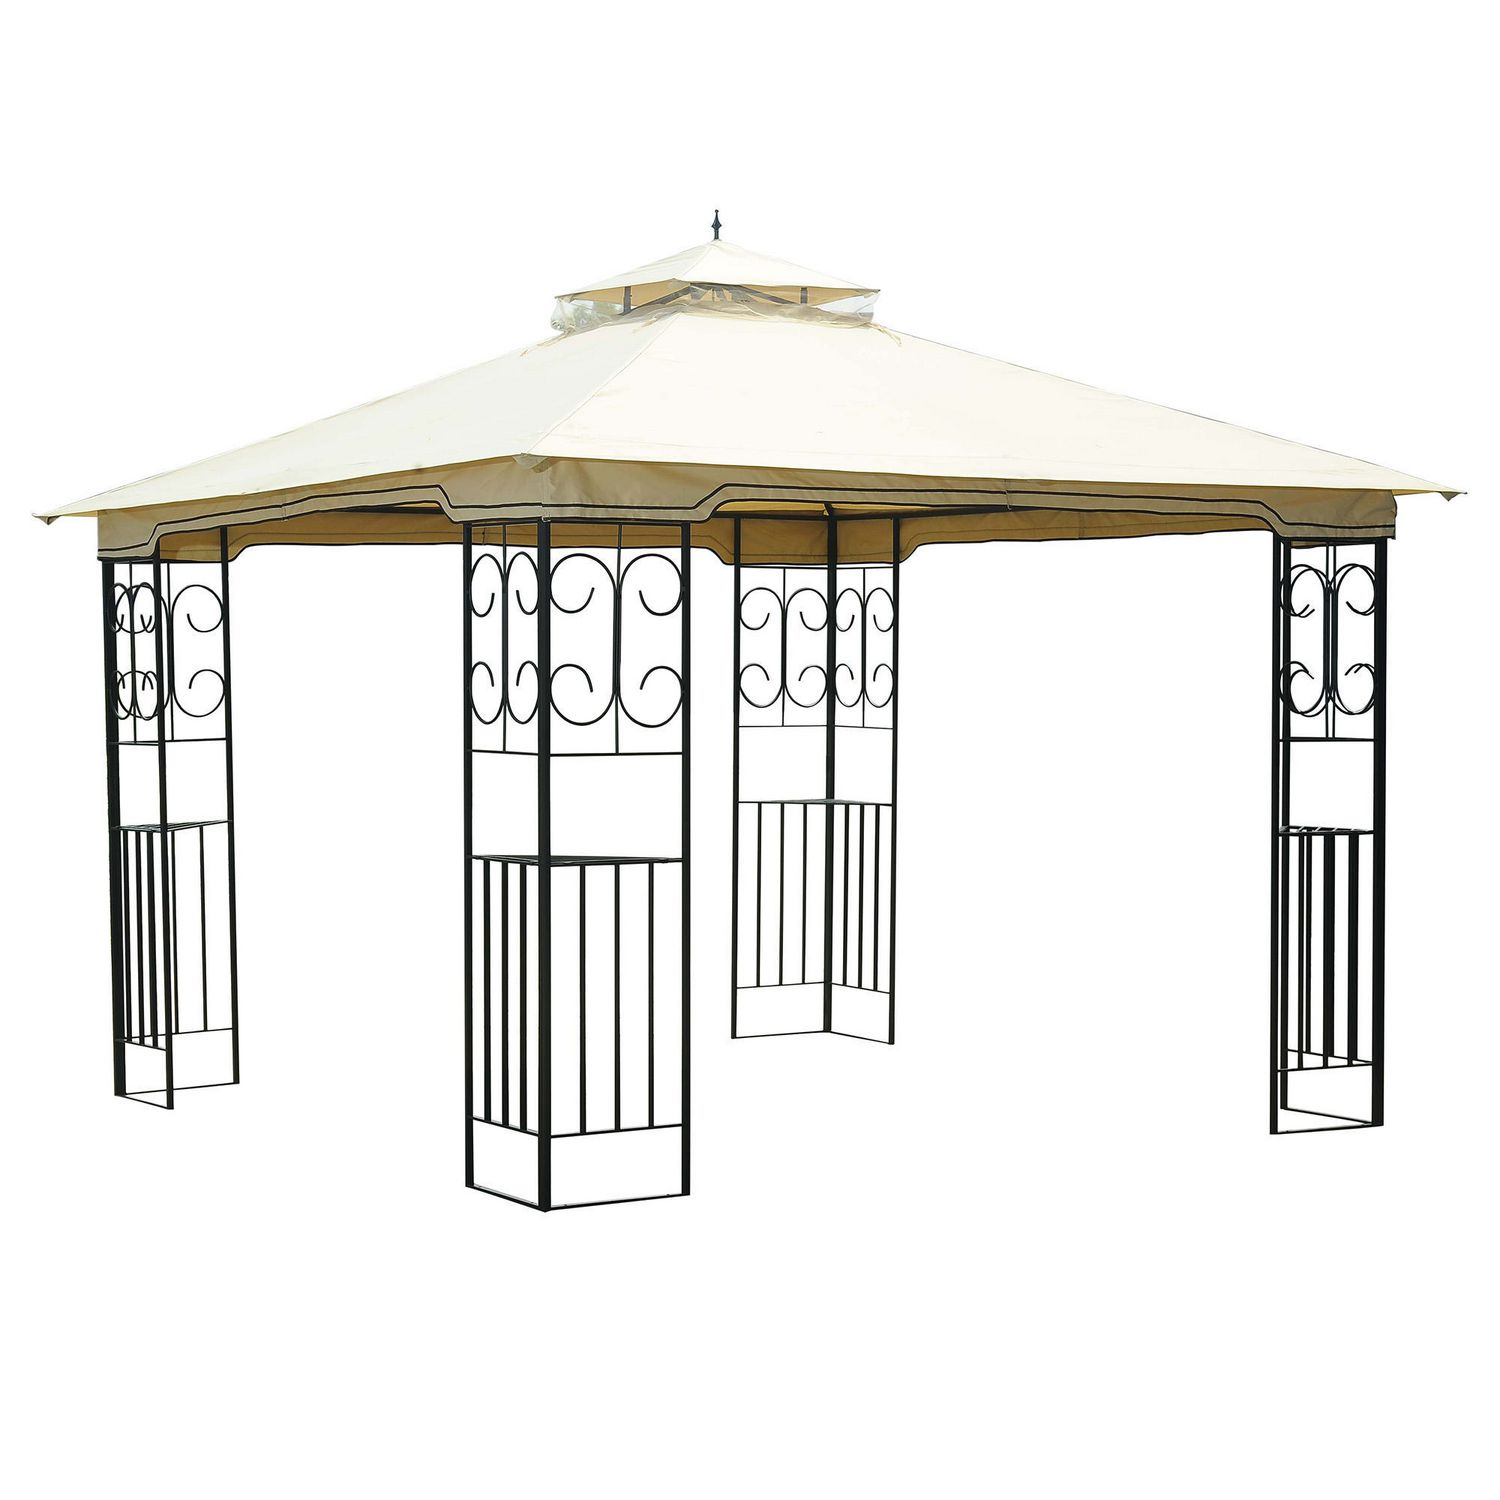 Classy sunjoy gazebo for garden ideas with sunjoy hardtop gazebo and sunjoy grill gazebo